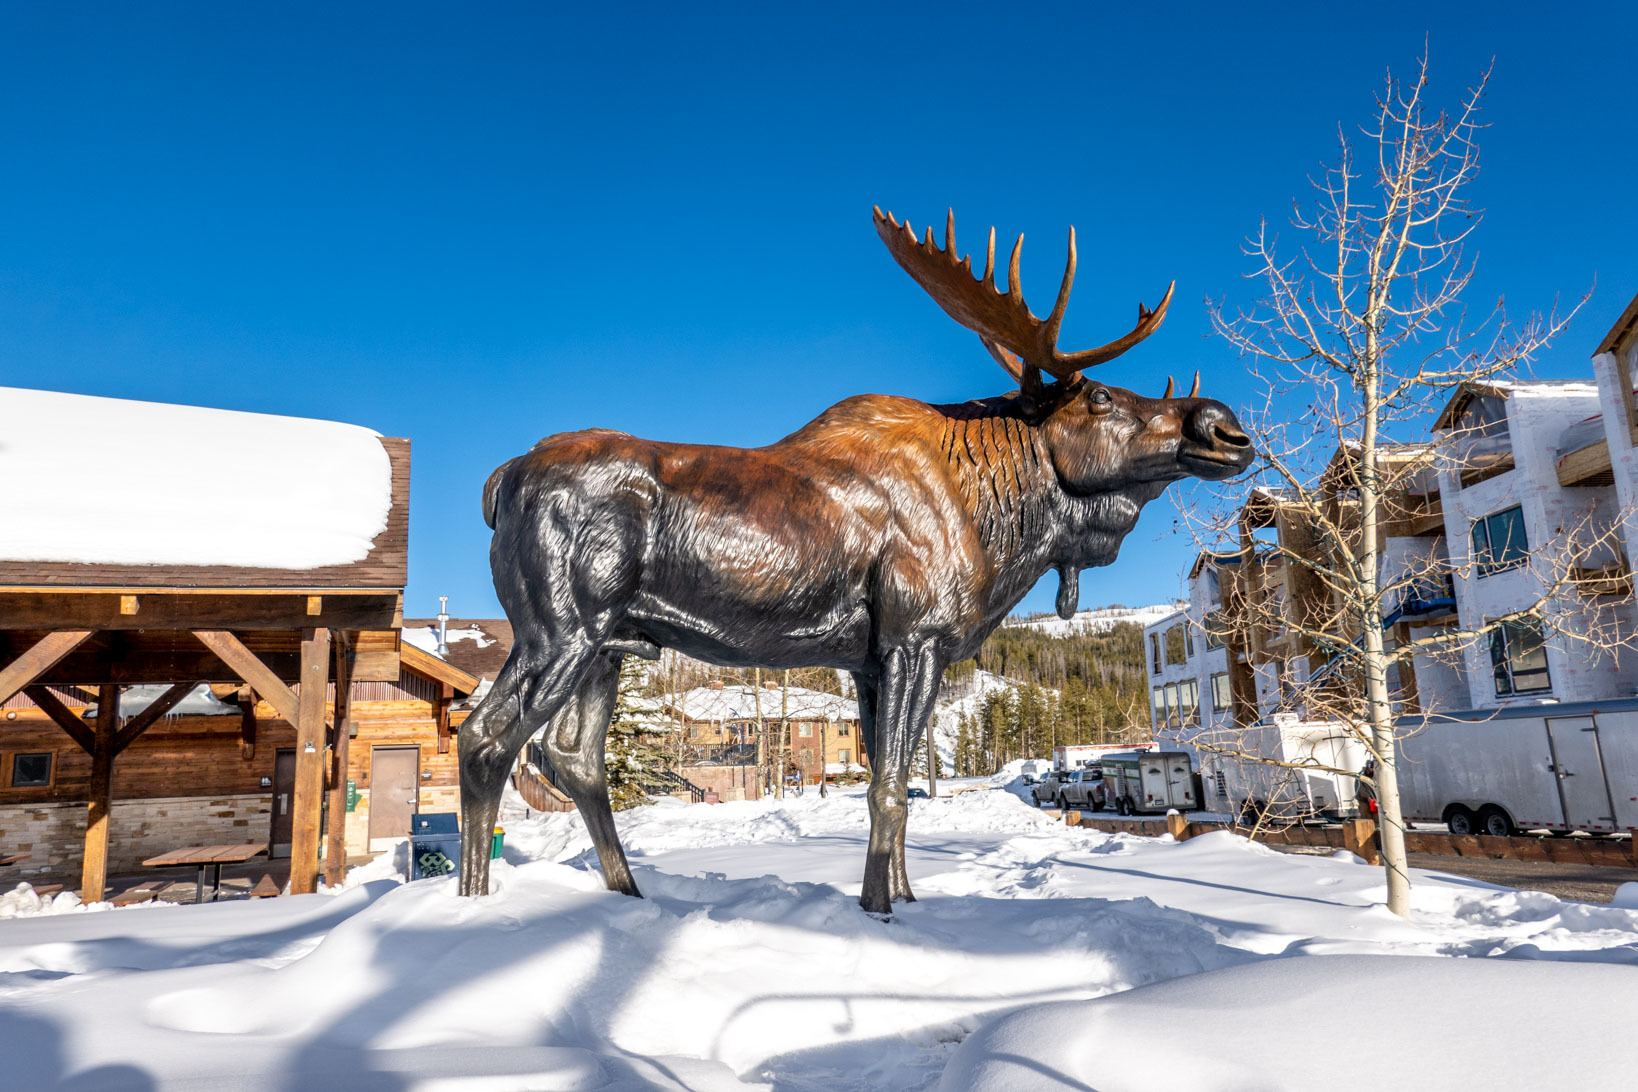 Moose sculpture in the snow